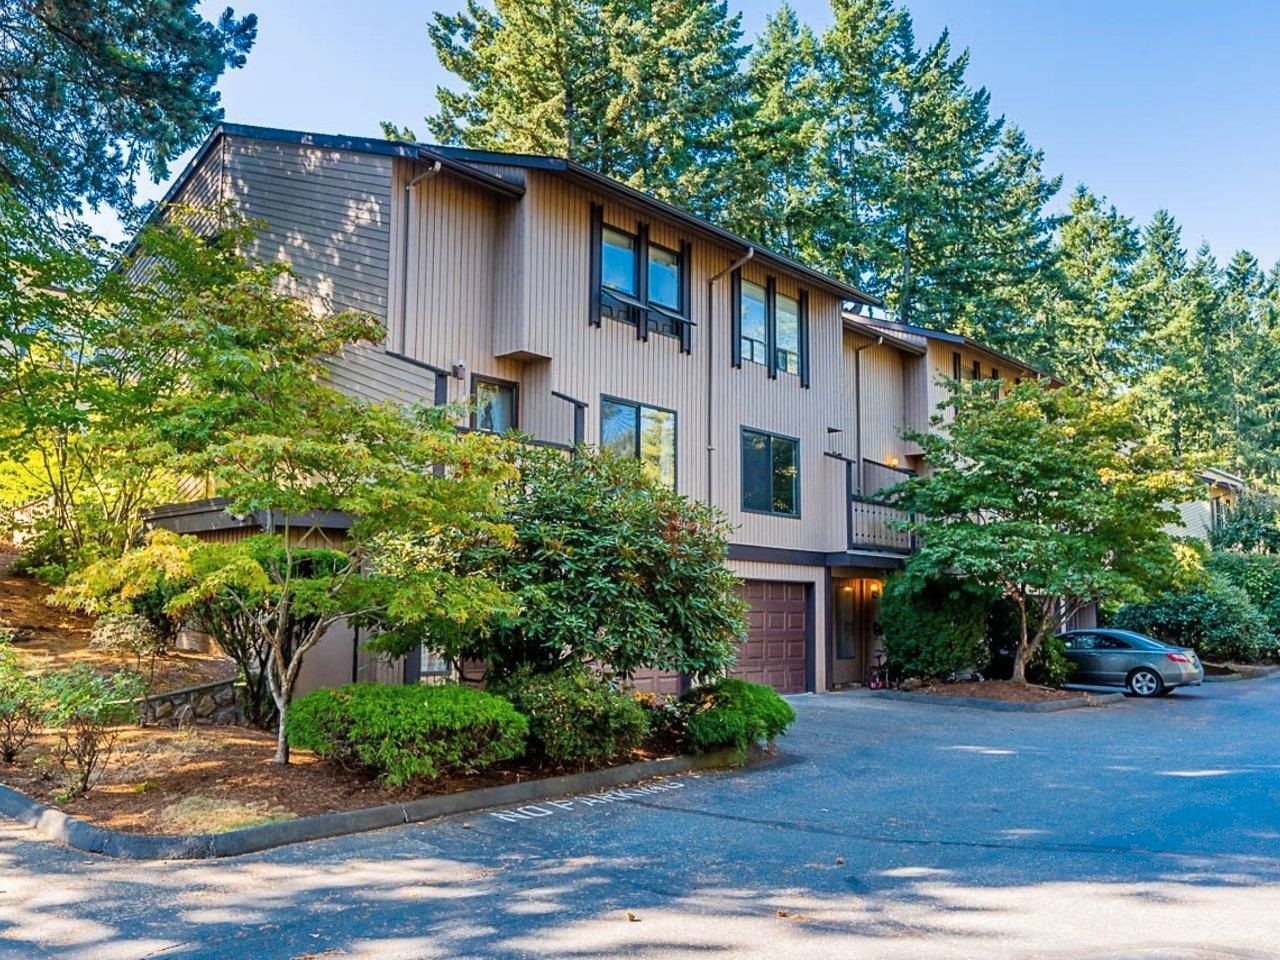 """Main Photo: 12 3015 TRETHEWEY Street in Abbotsford: Abbotsford West Townhouse for sale in """"Birch Grove Terrace"""" : MLS®# R2615766"""